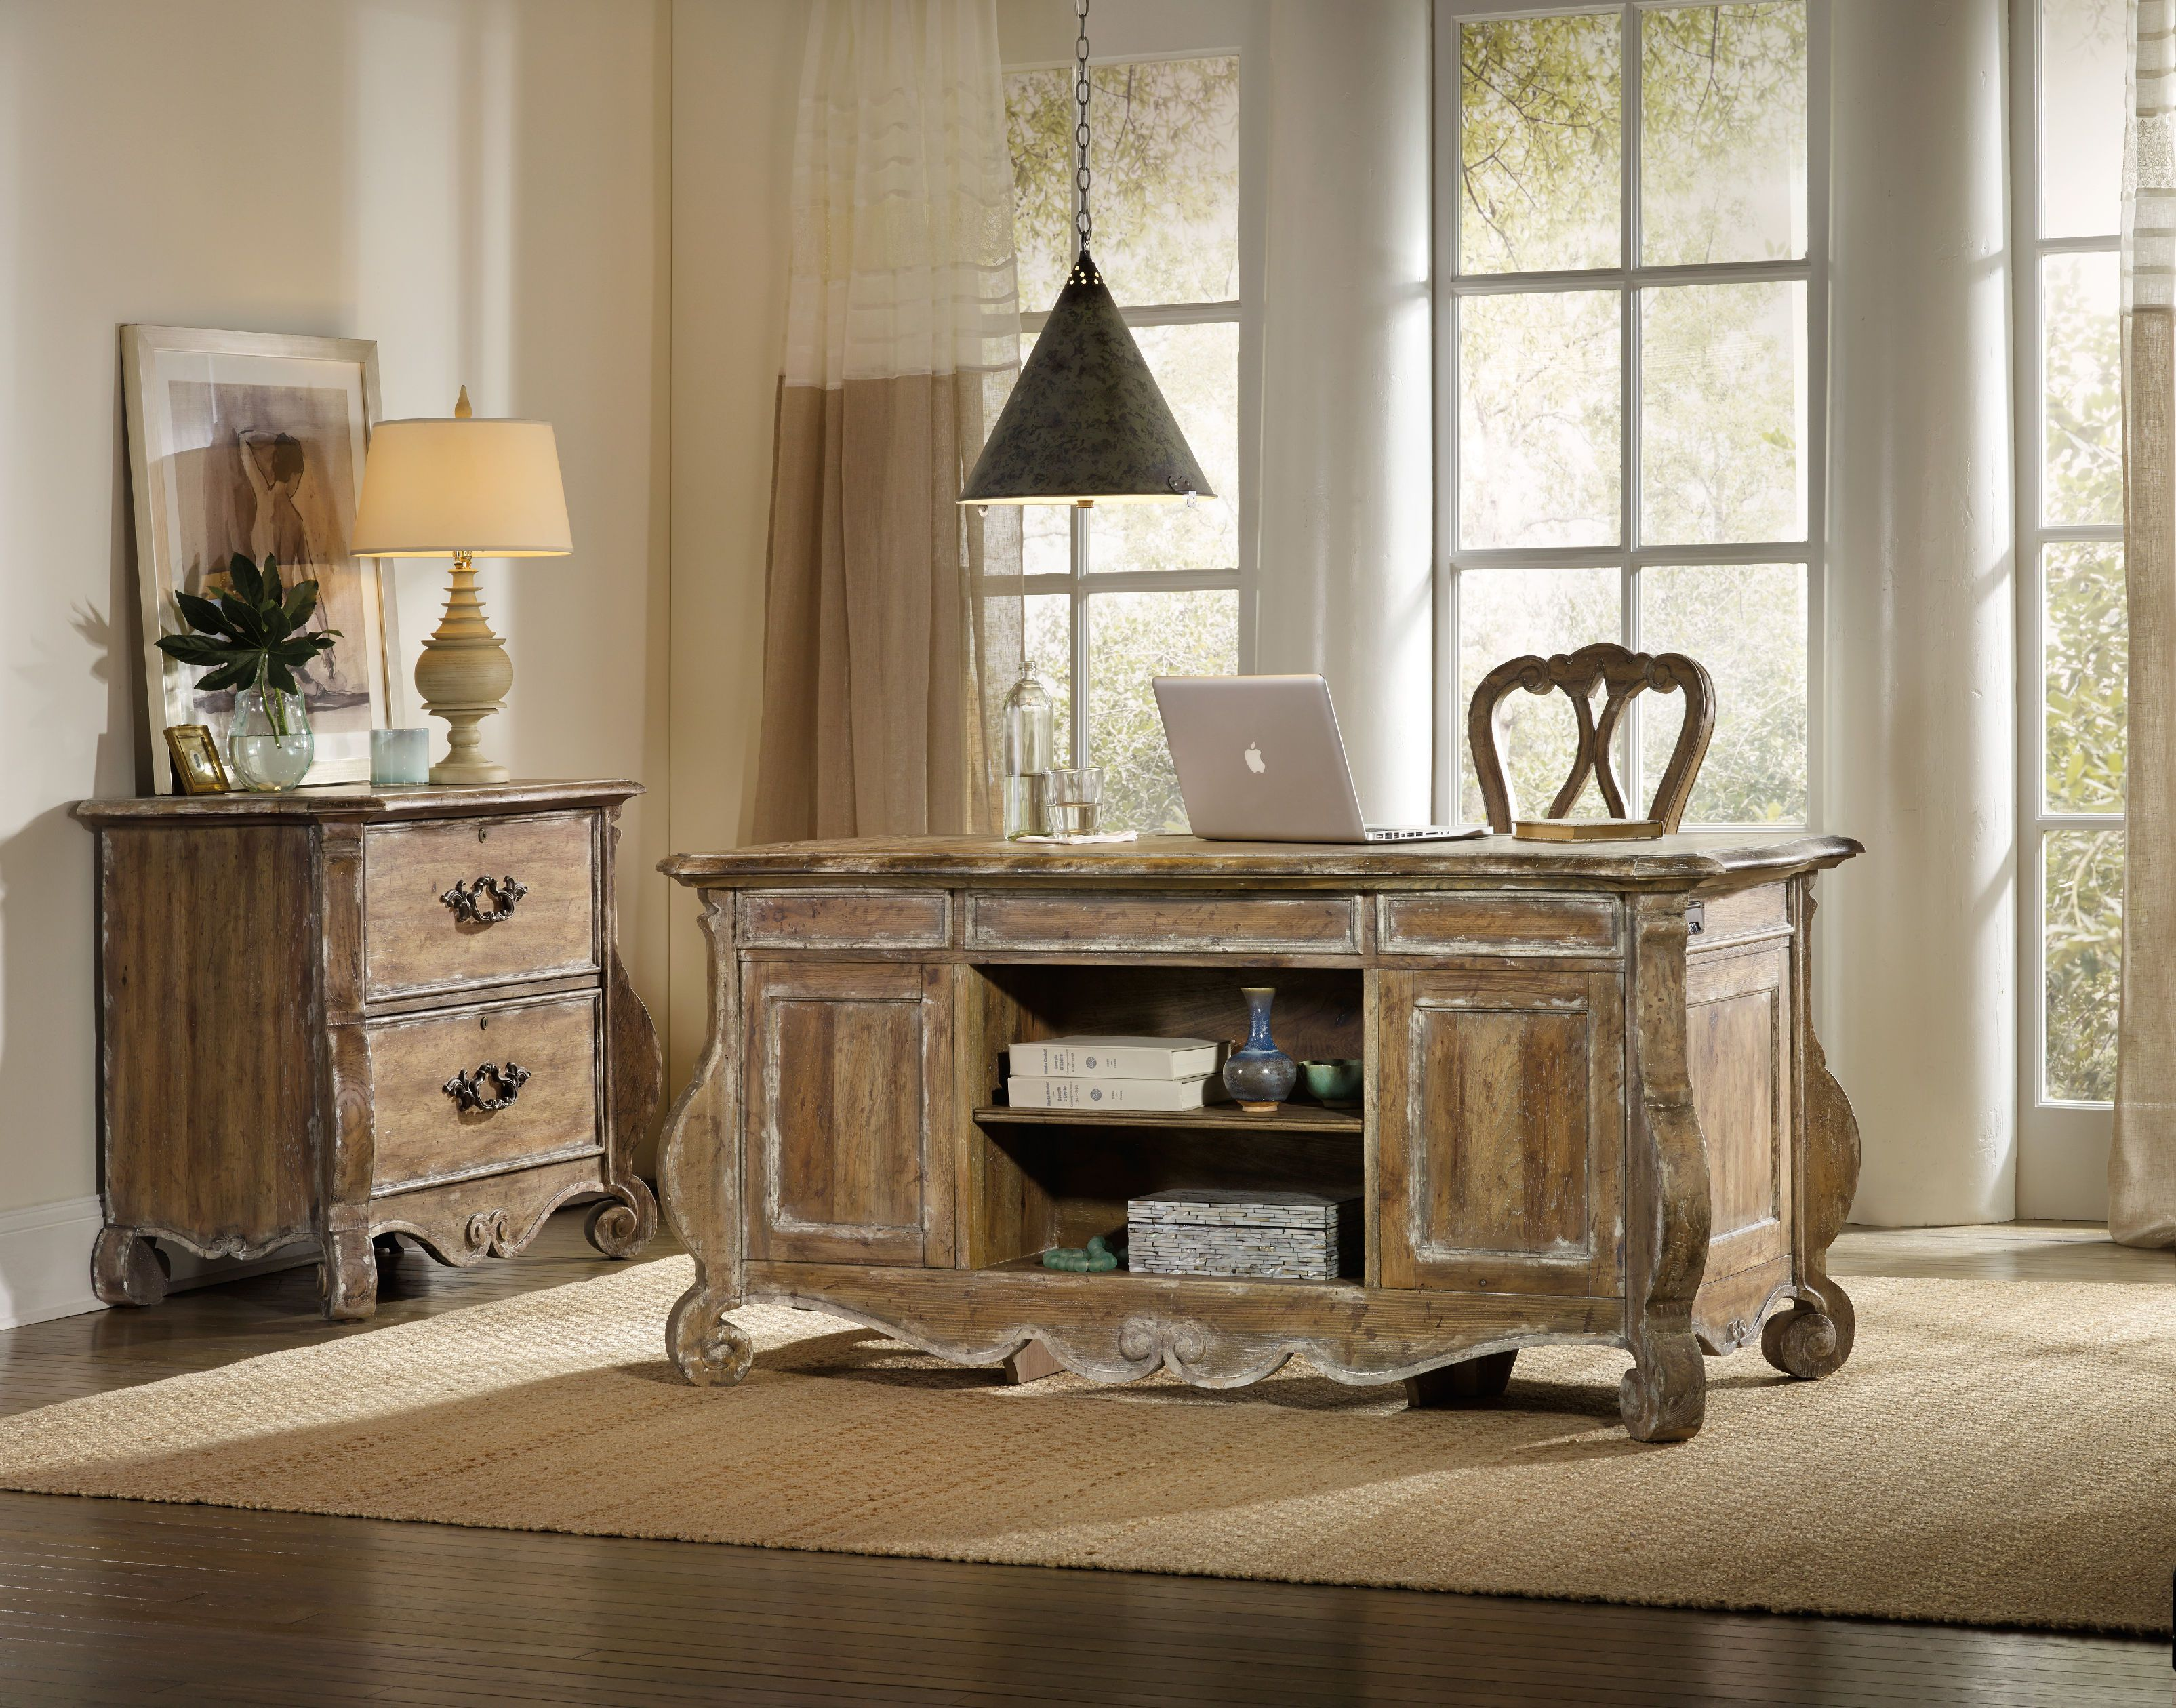 For Furniture Clet Executive Desk And Other Home Office Desks At B Myers In Goodlettsville Nashville Area Tn